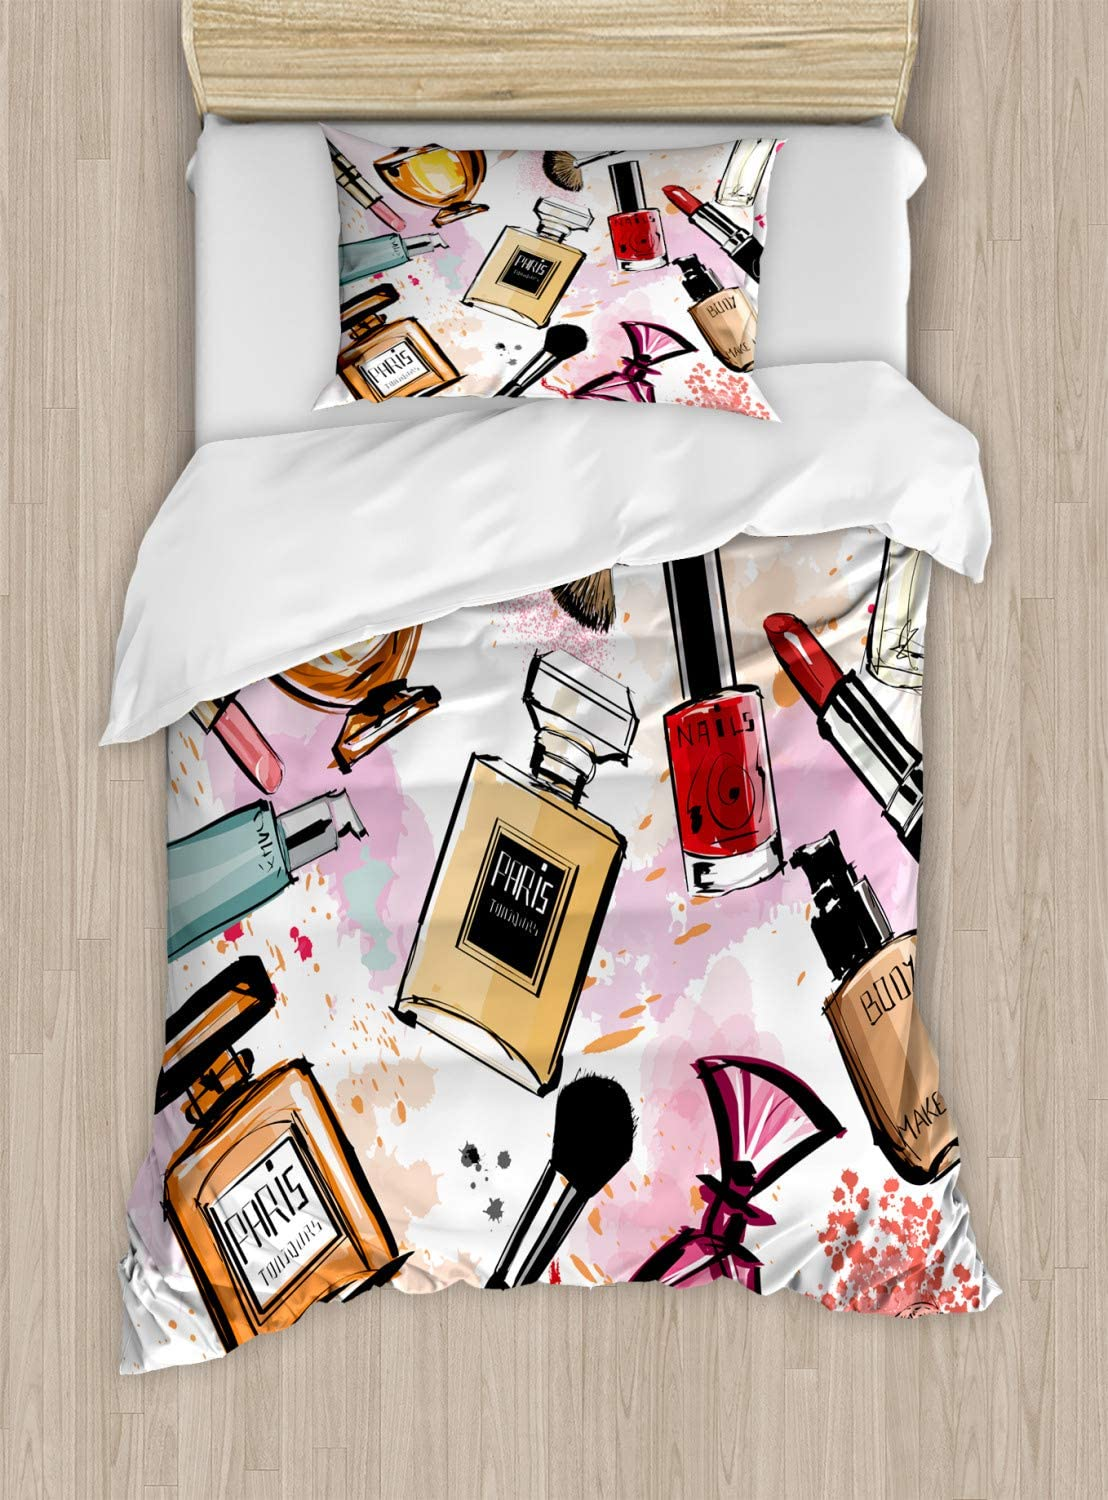 Ambesonne Fashion Duvet Cover Set, Cosmetic and Makeup Theme Pattern with Perfume Lipstick Nail Polish Brush Modern, Decorative 2 Piece Bedding Set with 1 Pillow Sham, Twin Size, Coral White